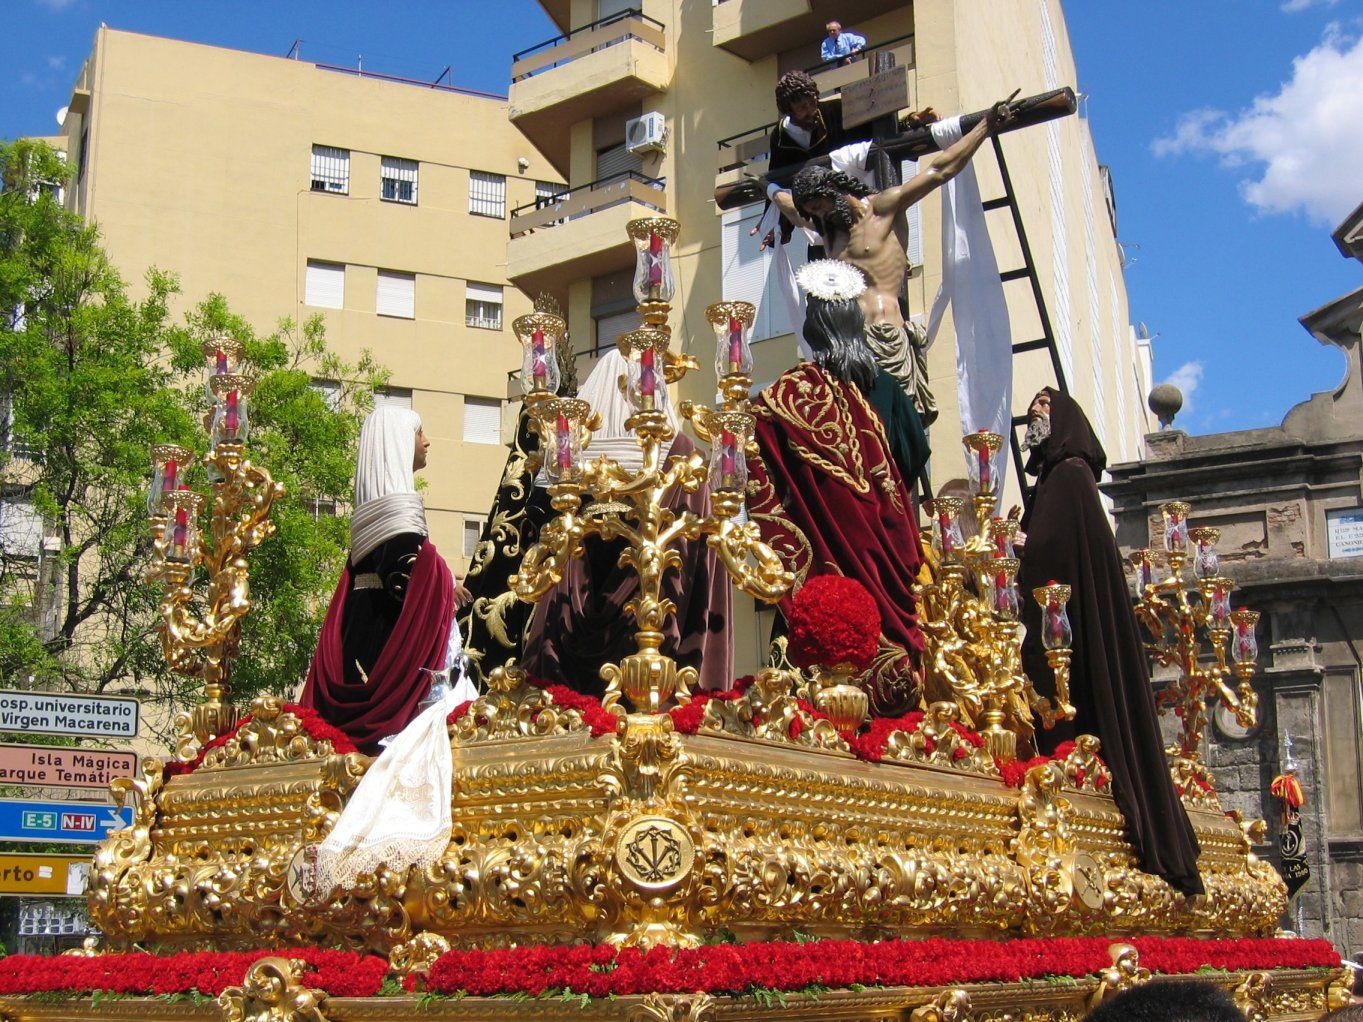 http://www.pvv.org/%7Eerikad/Themepages/Travel/Andalucia/semana_santa/paso1.jpg